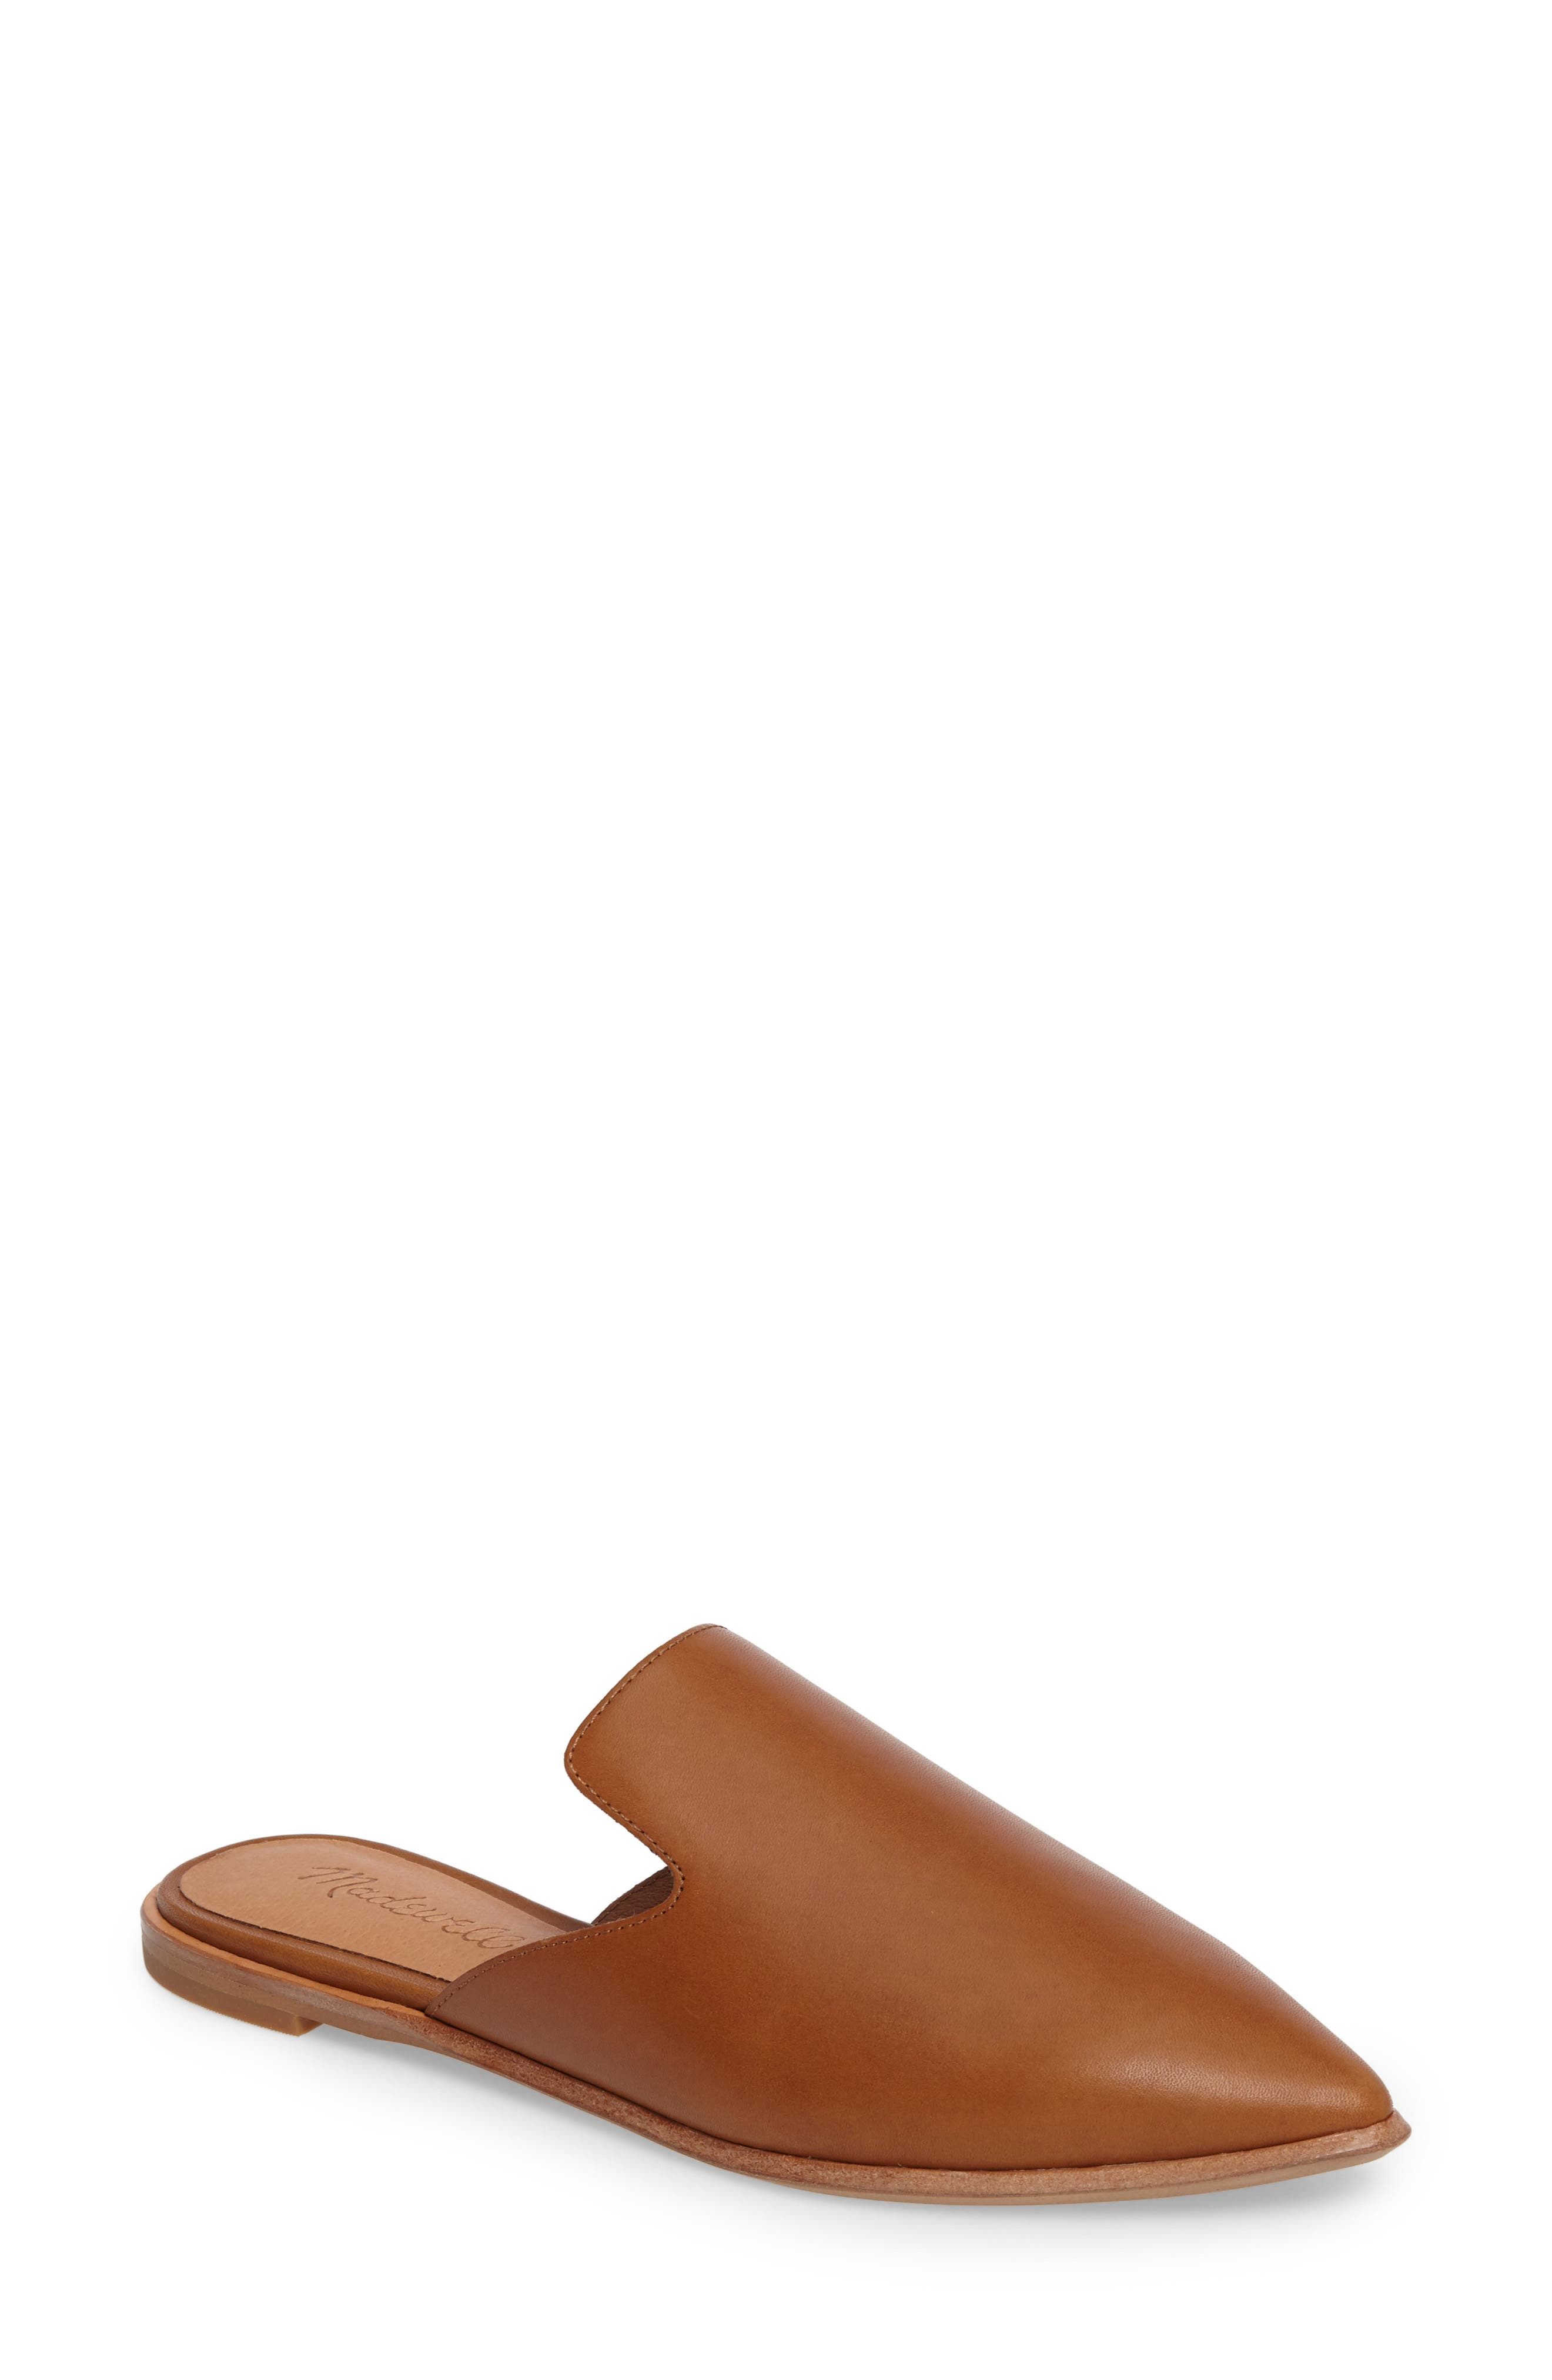 Alternate Image 1 Selected - Madewell The Gemma Pointy Toe Mule (Women)